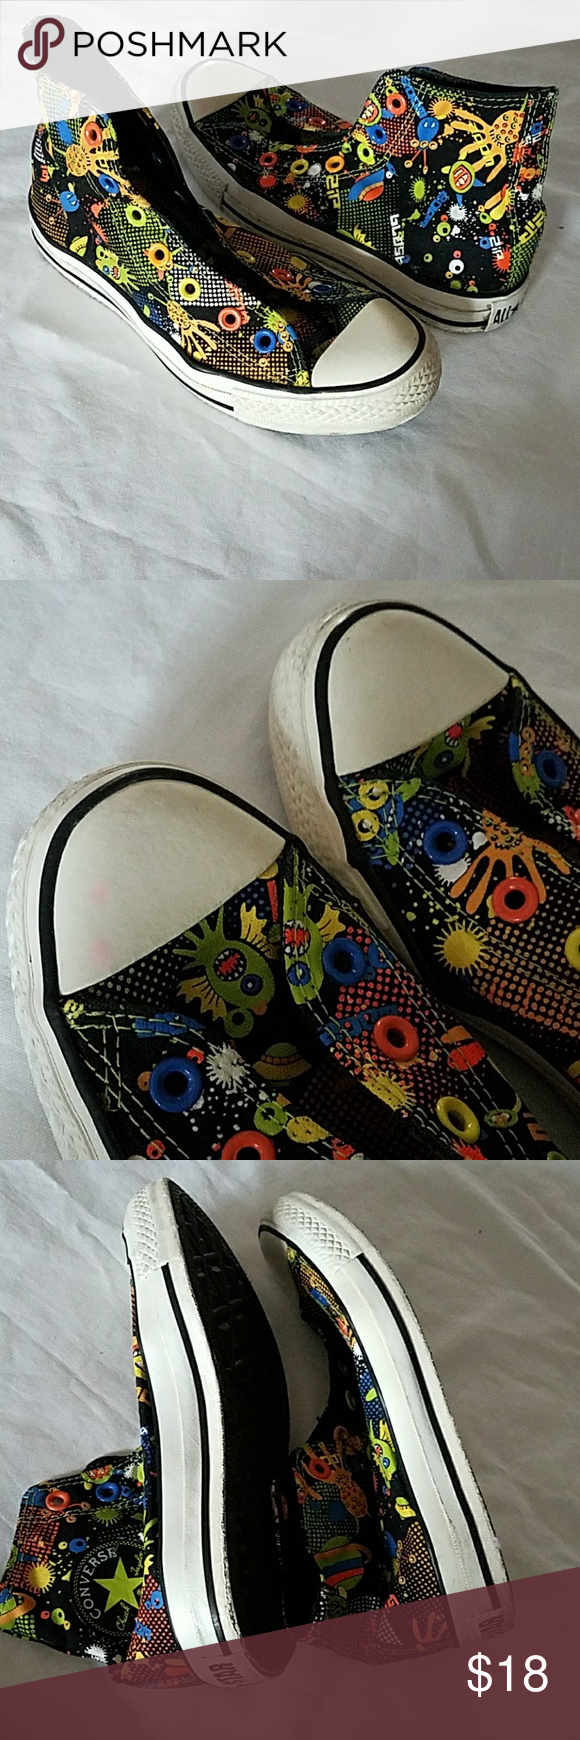 96c9245de0a Converse Space Alien Chuck Taylor Size 5. No shoelaces. Used but have alot  of life still in them. Space Alien print. Converse Shoes Sneakers